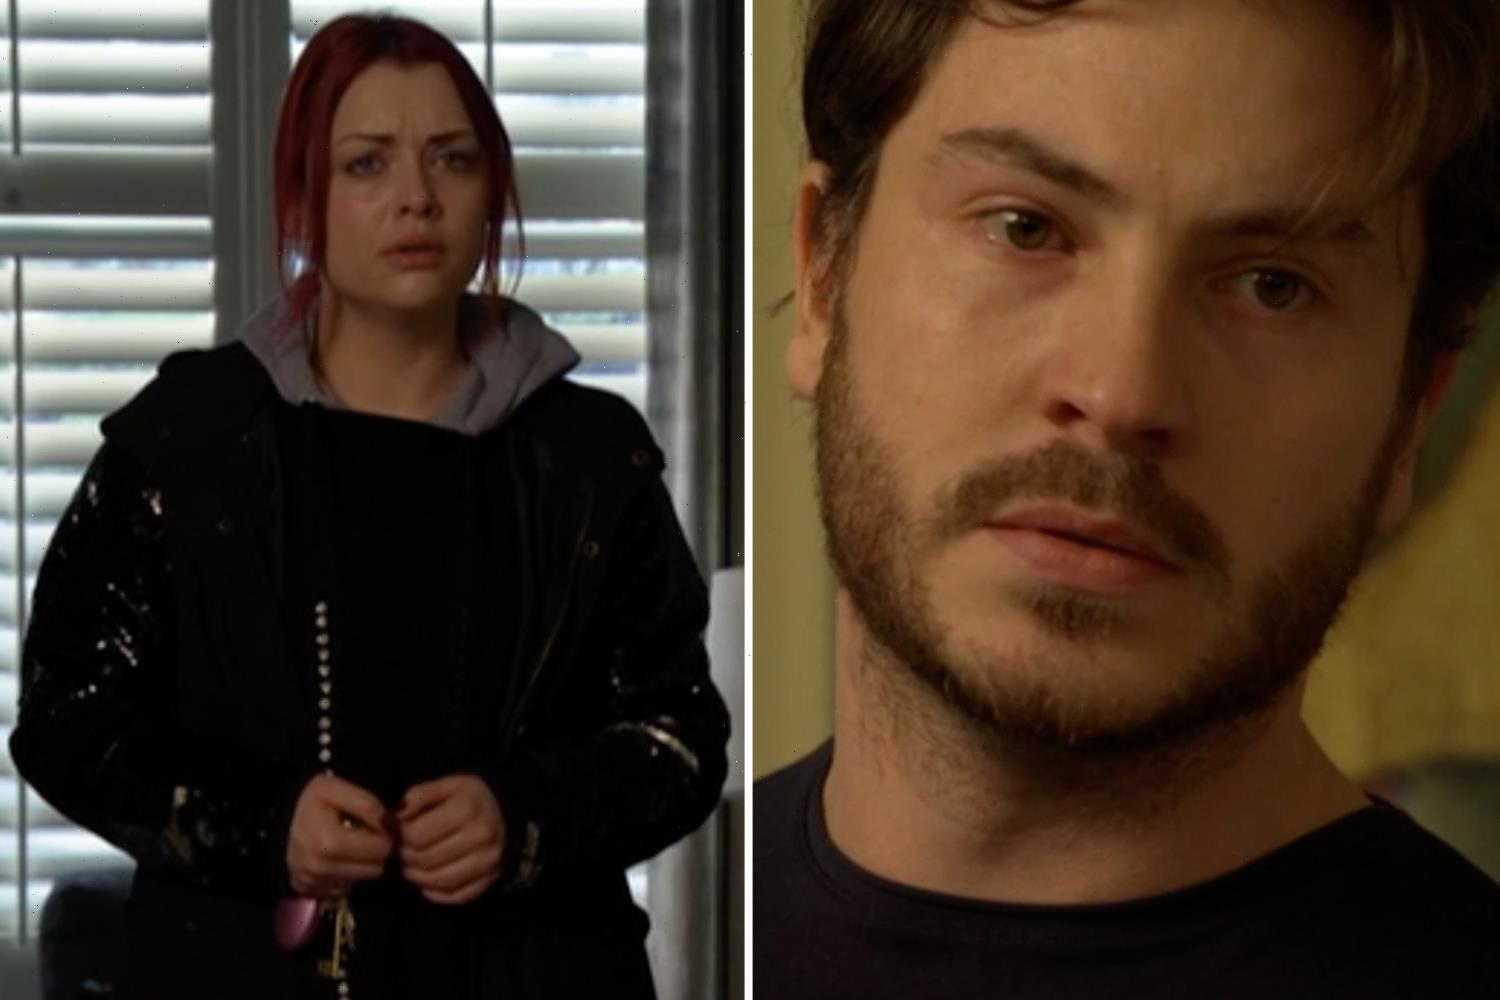 EastEnders fans convinced Whitney Dean will expose Gray Atkins' murders after his vile outburst